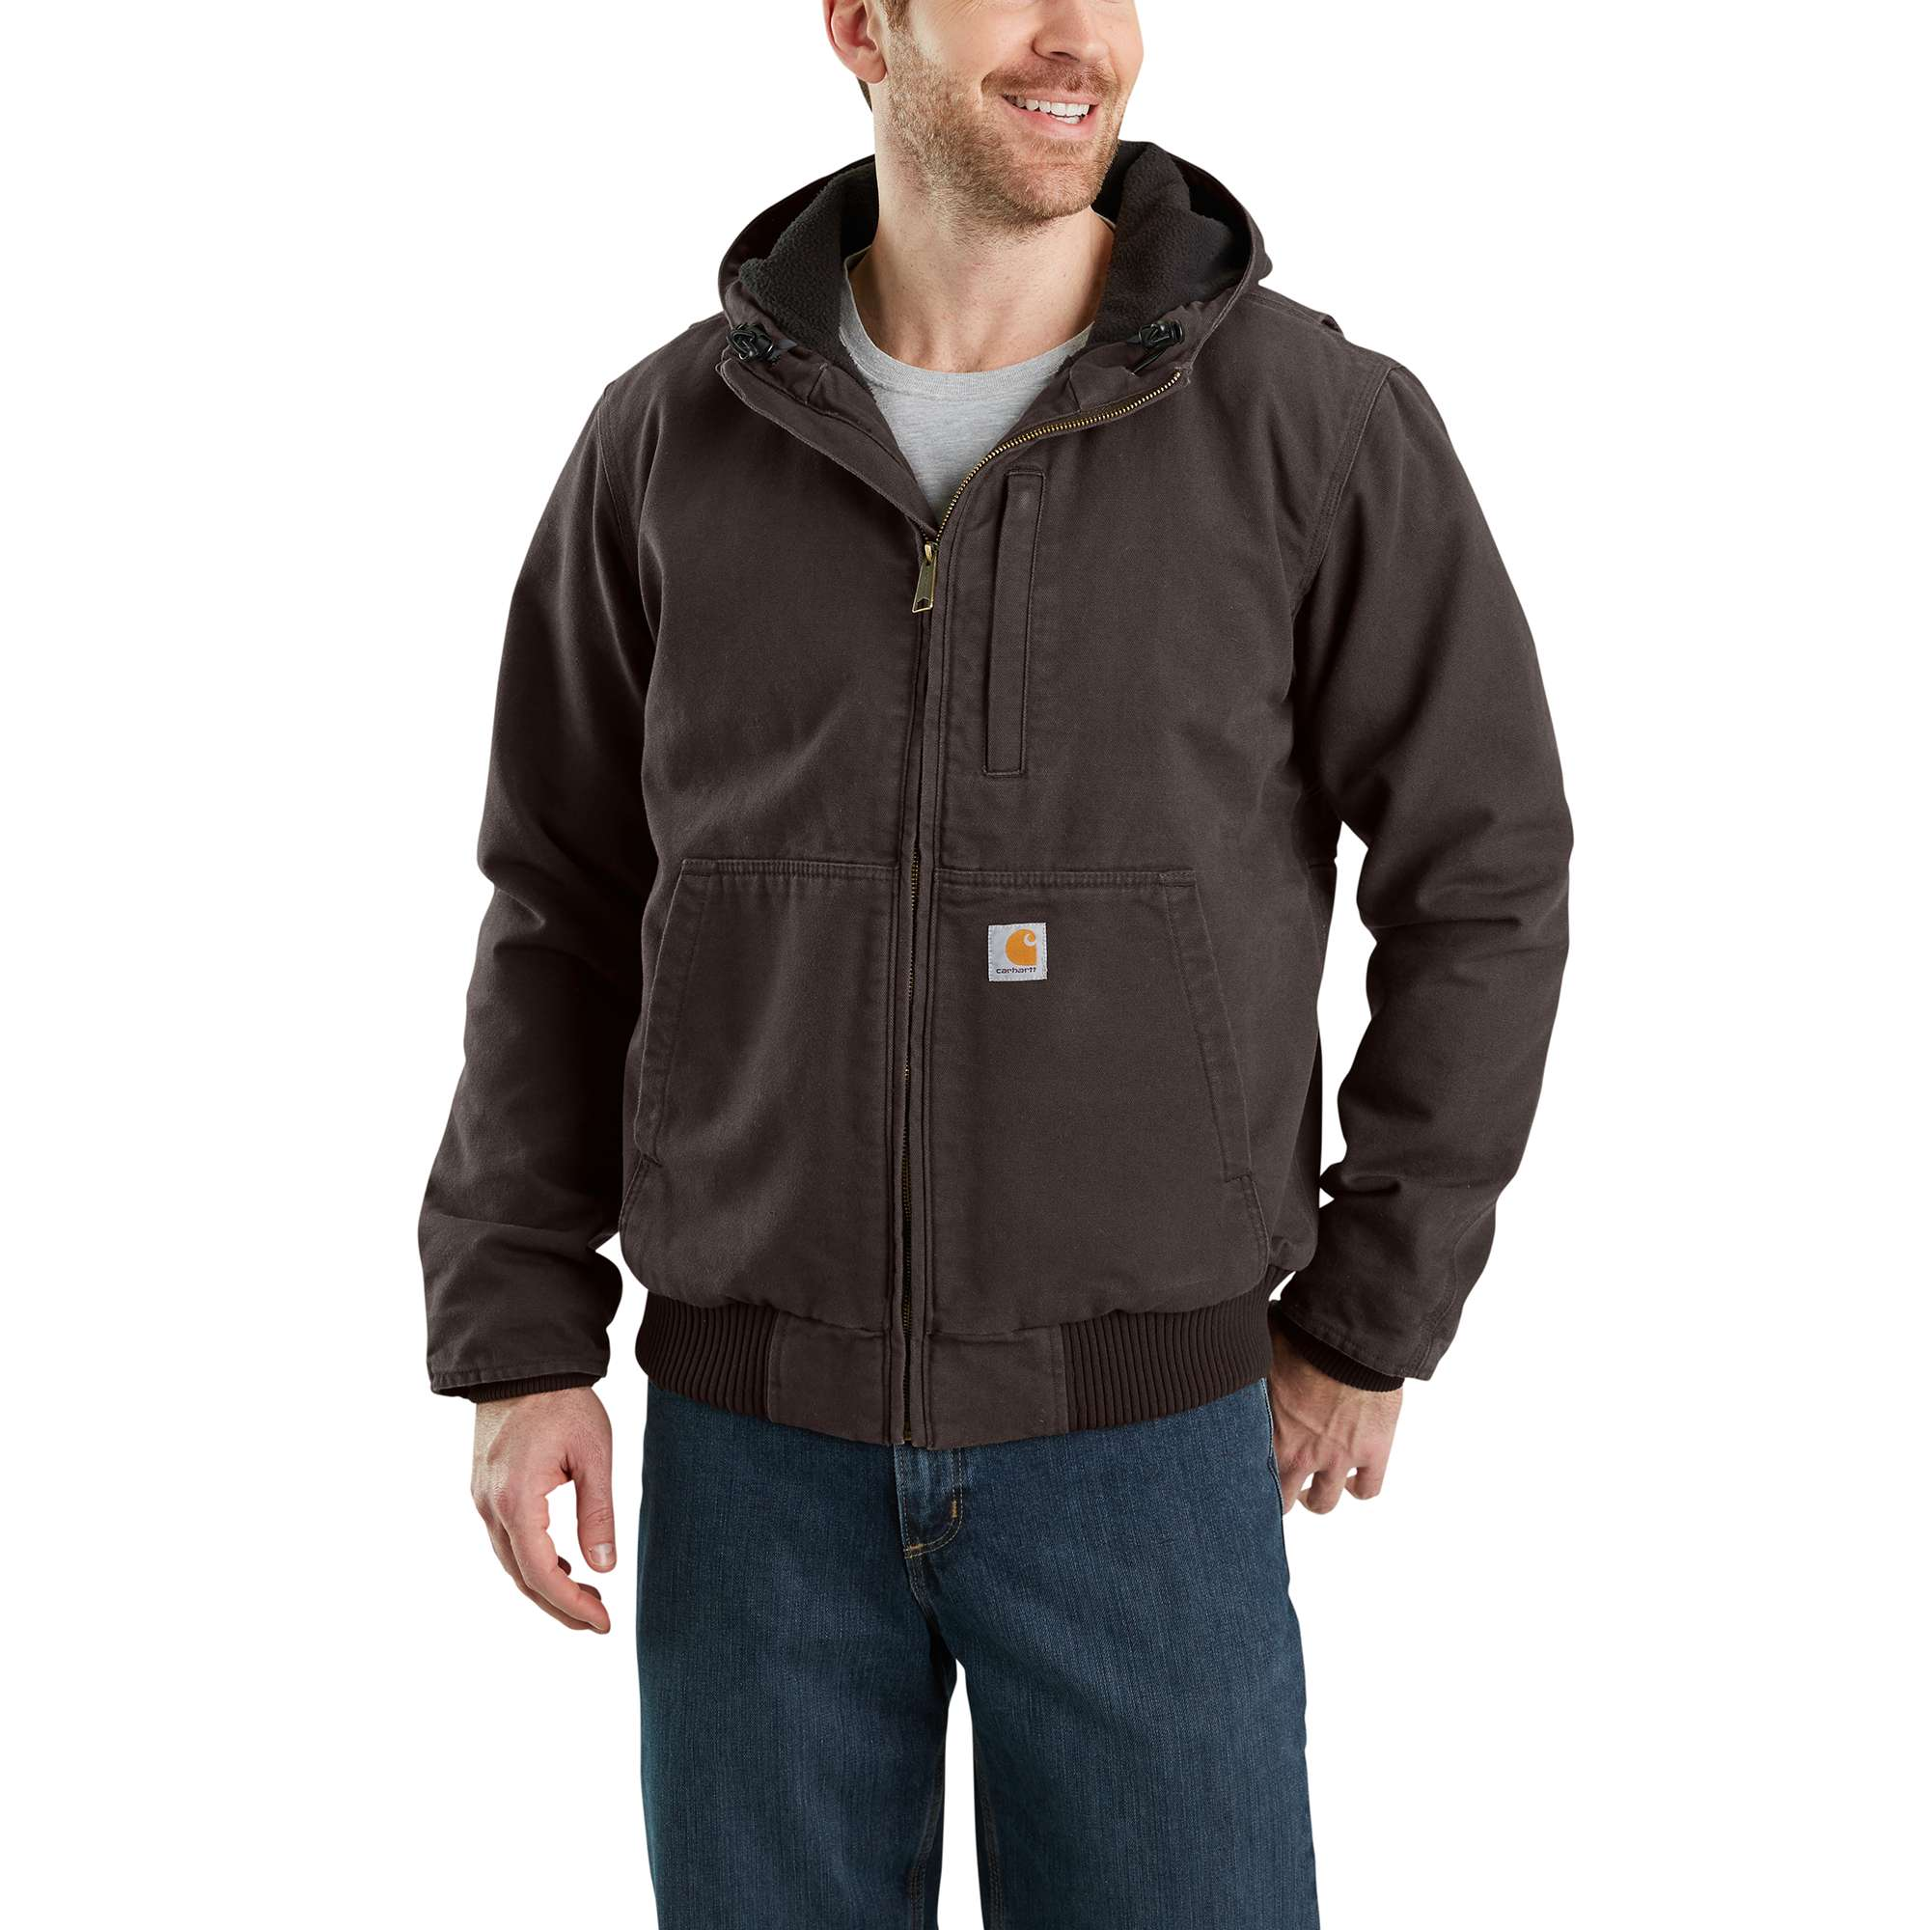 c0308a0d9 Men's Full Swing® Armstrong Active Jac 103371 | Carhartt